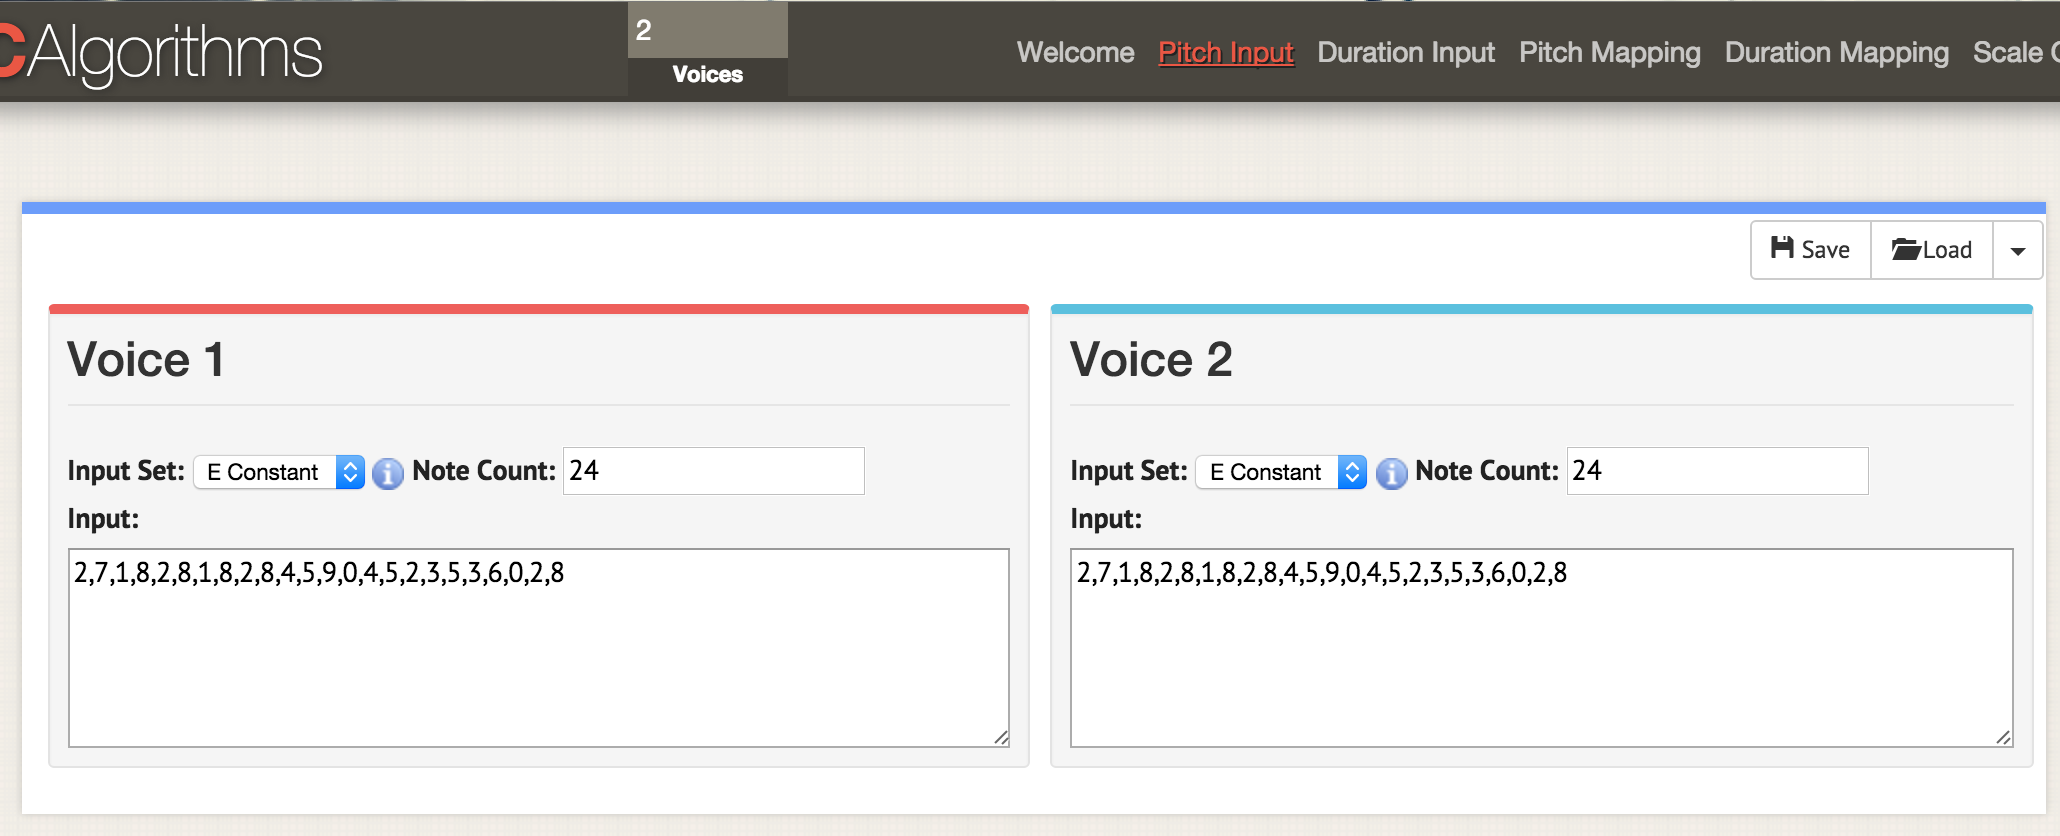 Put 2 into the voices box at the top of the interface. When you then go to any of the option pages - here, we're at 'pitch input' - two displays open up to show you the data for two voices. Load your csv data as before, but have your csv formatted to have 'areaPitch1' and 'areaPitch2' as described in the main text. The data for voice one will appear on the left, and for voice two on the right.